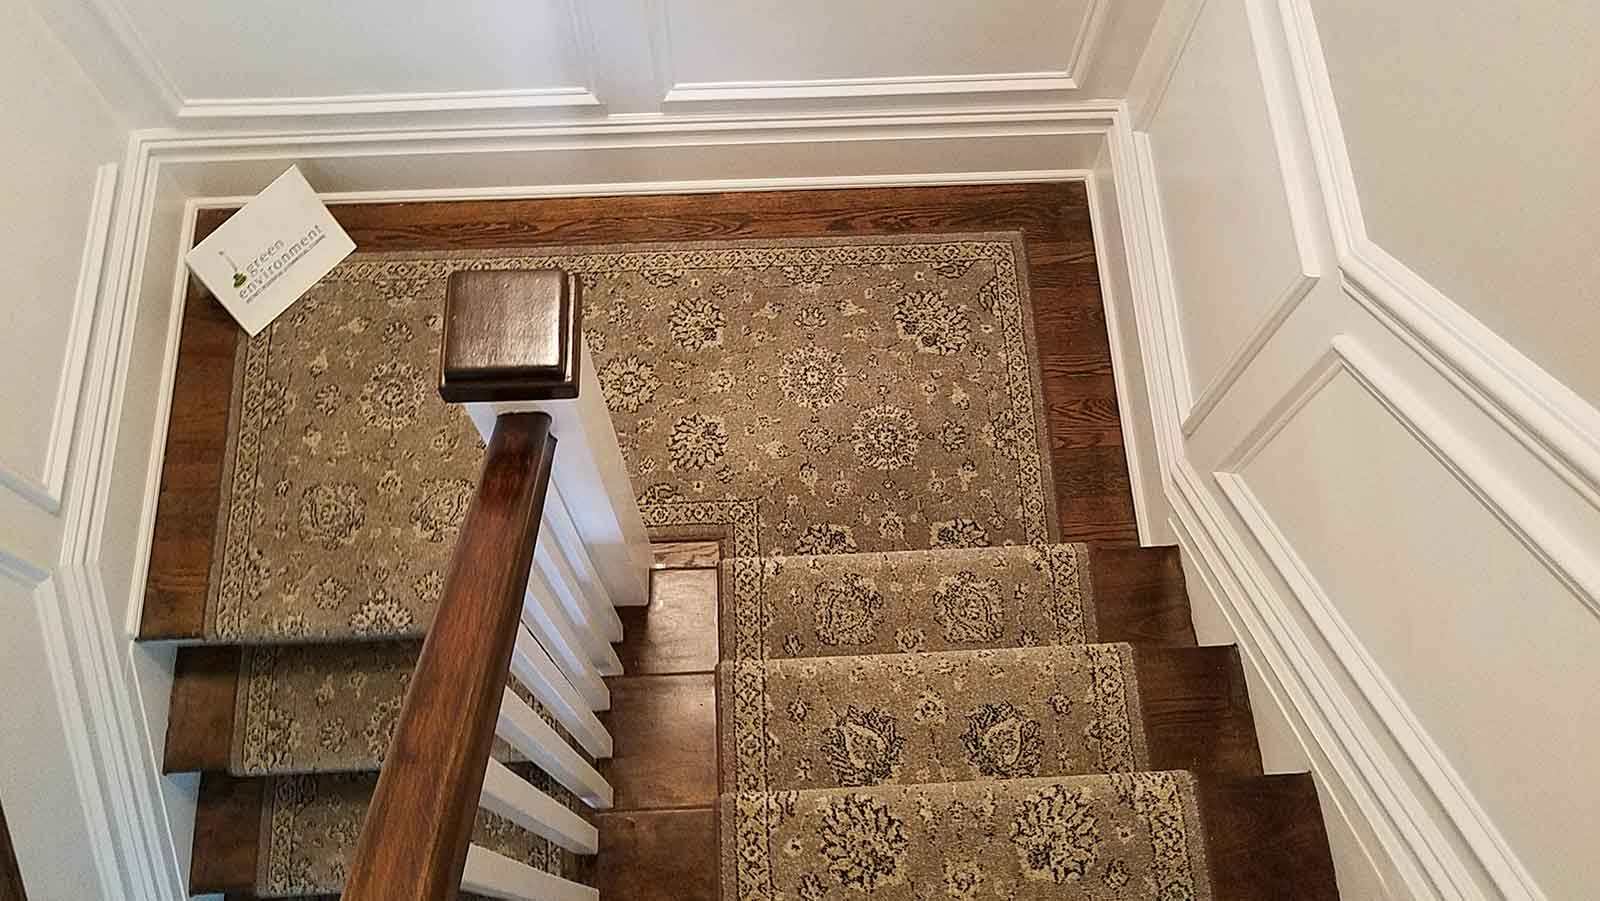 Wooden stairwell with carpet runner after a post-construction cleaning.